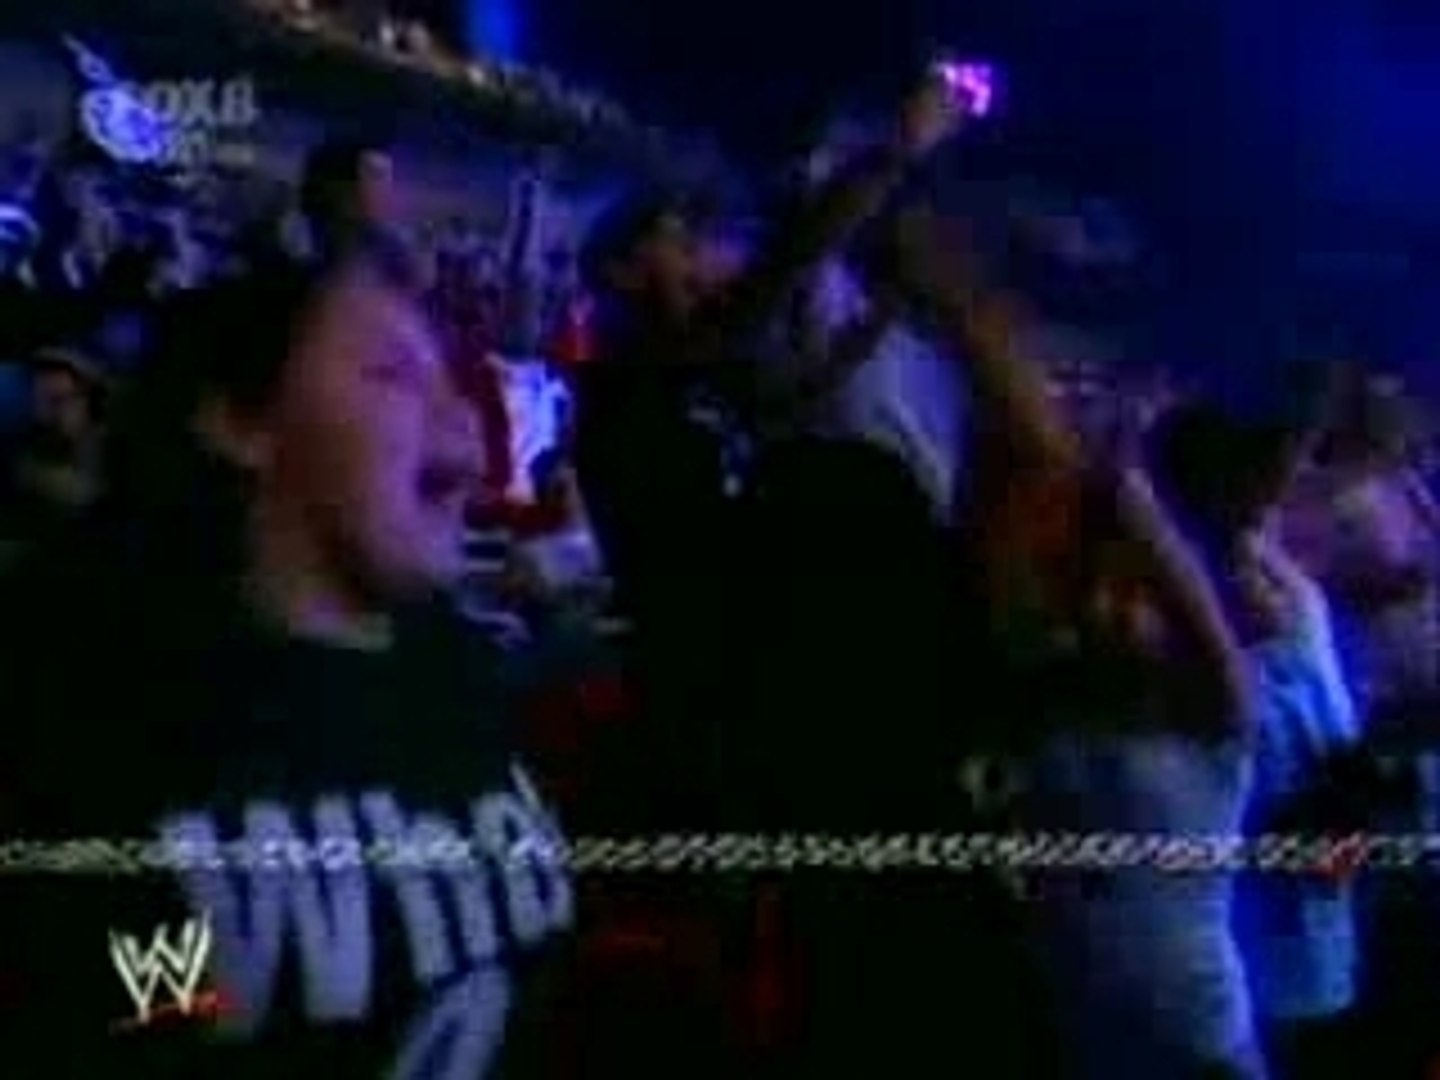 WWe Smackdown 28/12/2007 Greatest Match 2007 Part 4